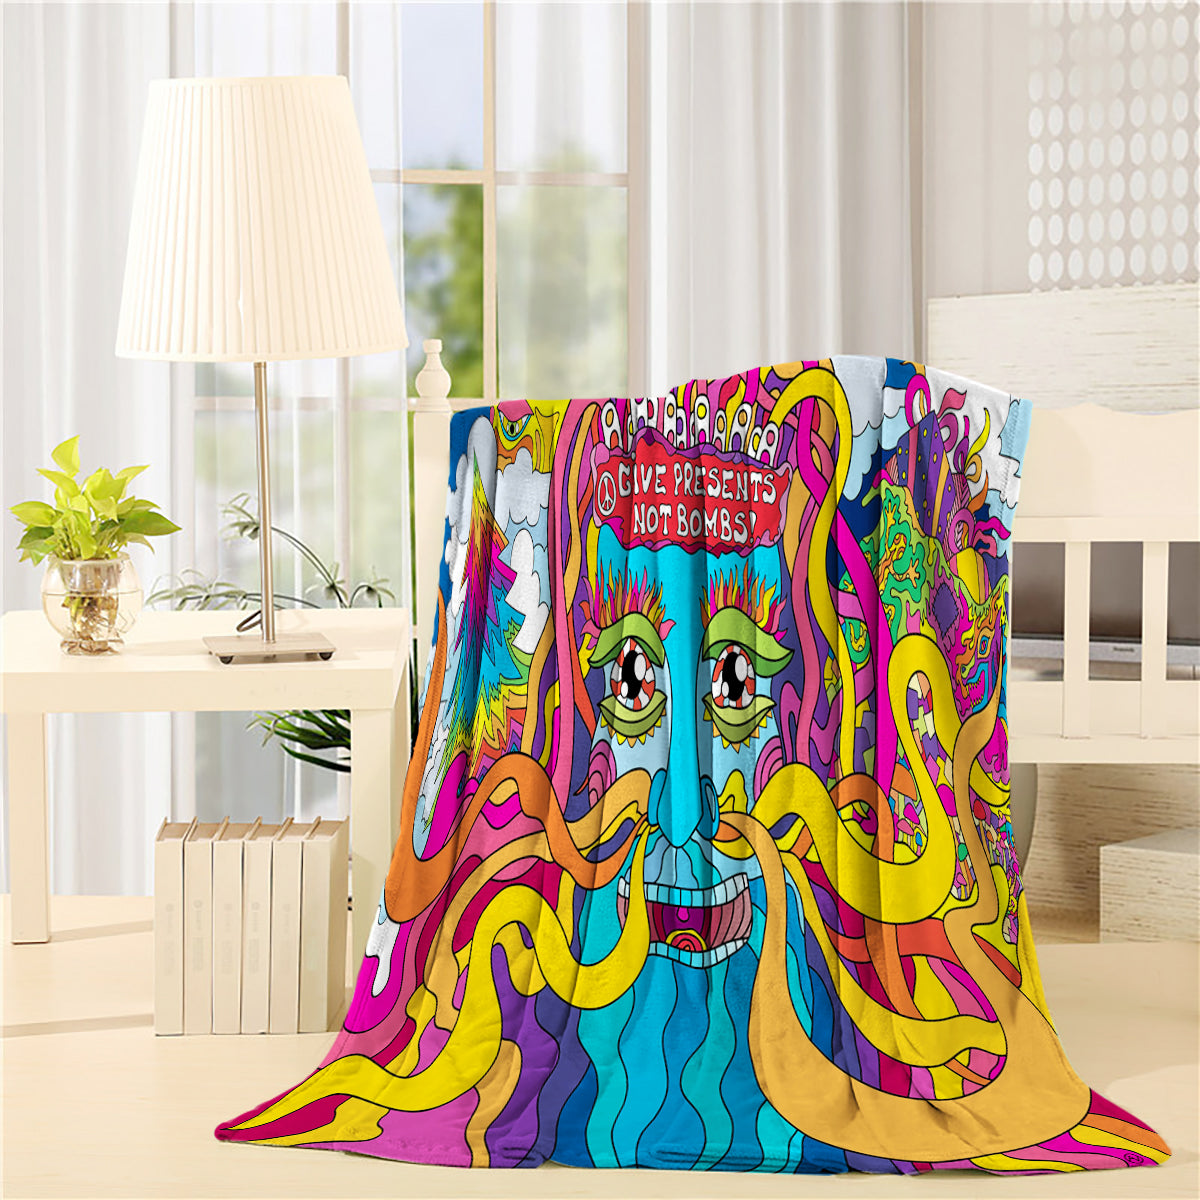 Give Presents Not Bombs Psychedelic Art Throw Blankets